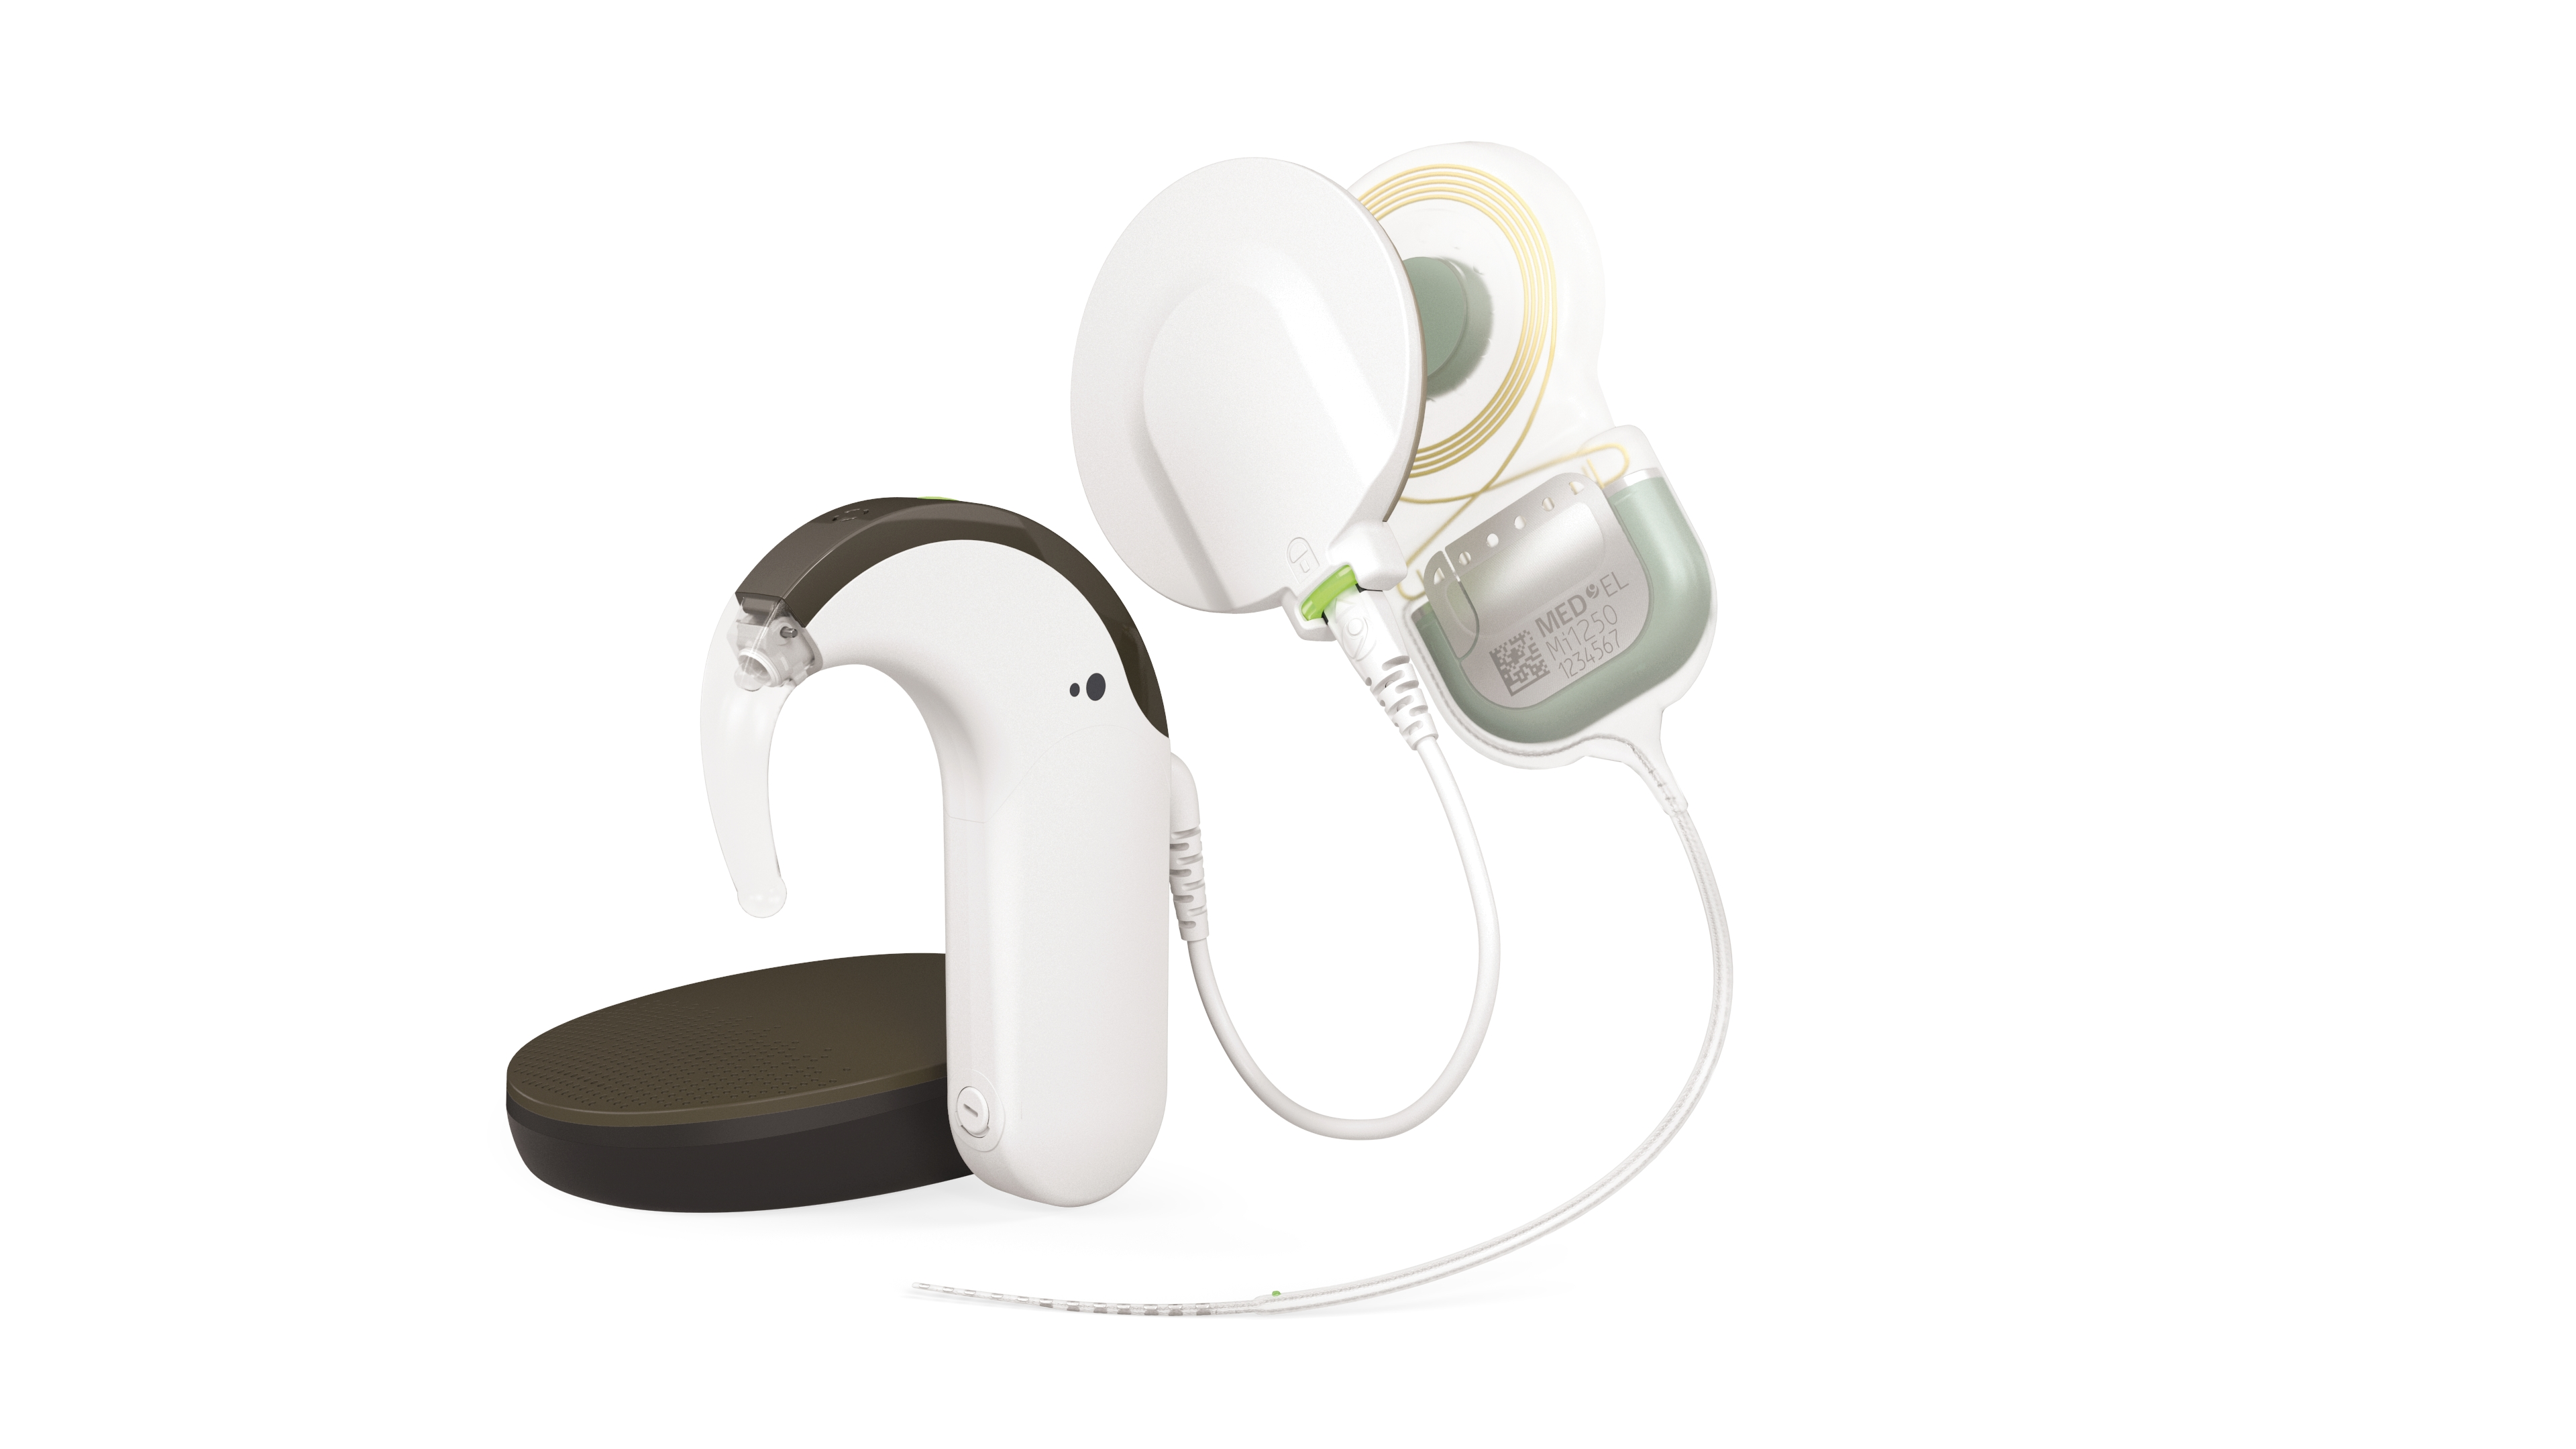 MED-EL's SYNCHRONY 2 cochlear implant with both the SONNET 2 and RONDO 3 processors